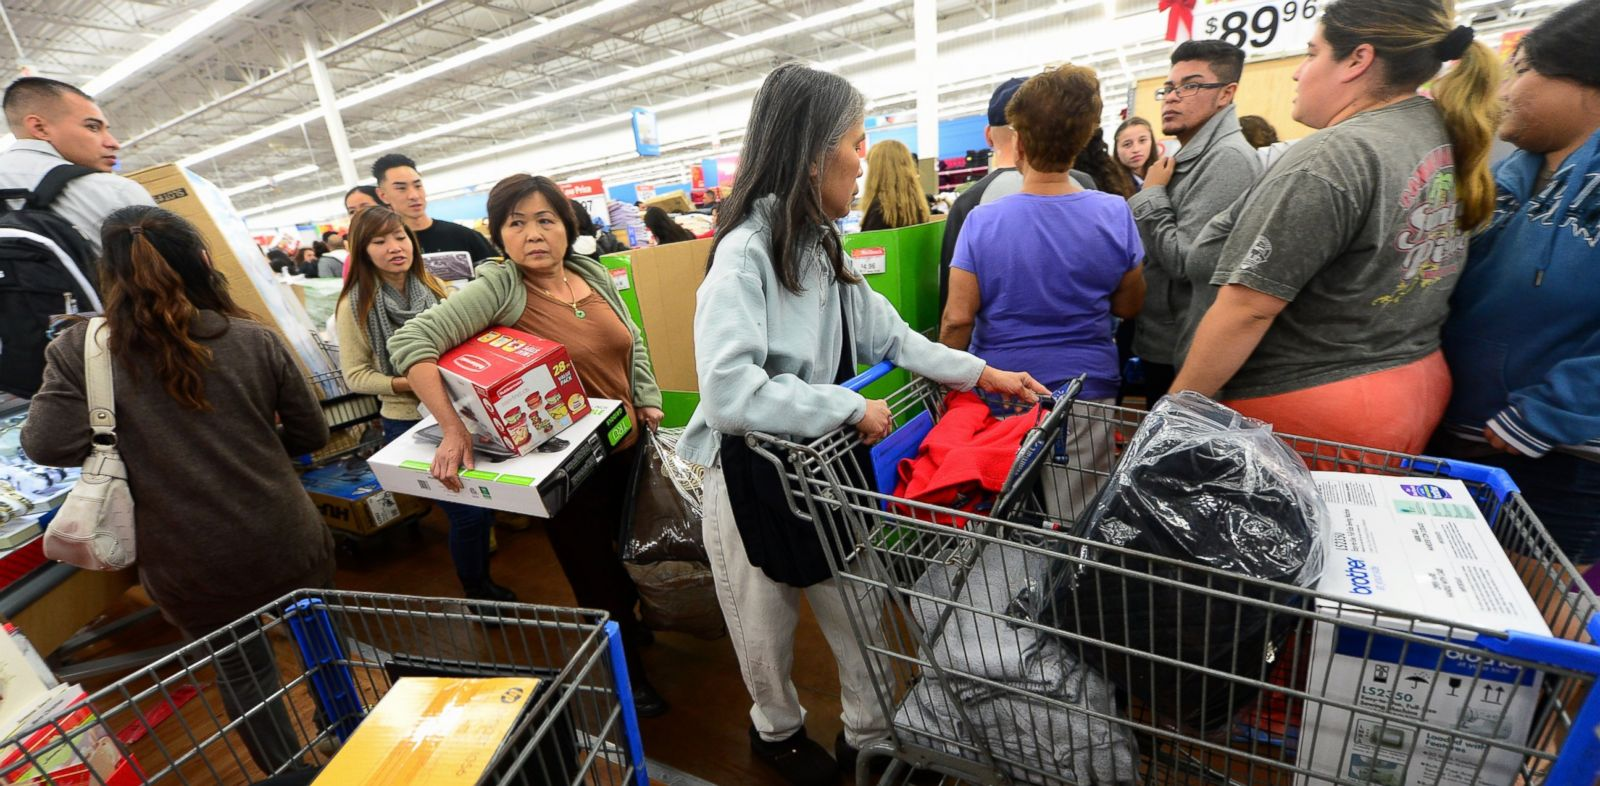 PHOTO: People get an early start on Black Friday shopping deals at a Walmart Superstore on November 22, 2012 in Rosemead, California.